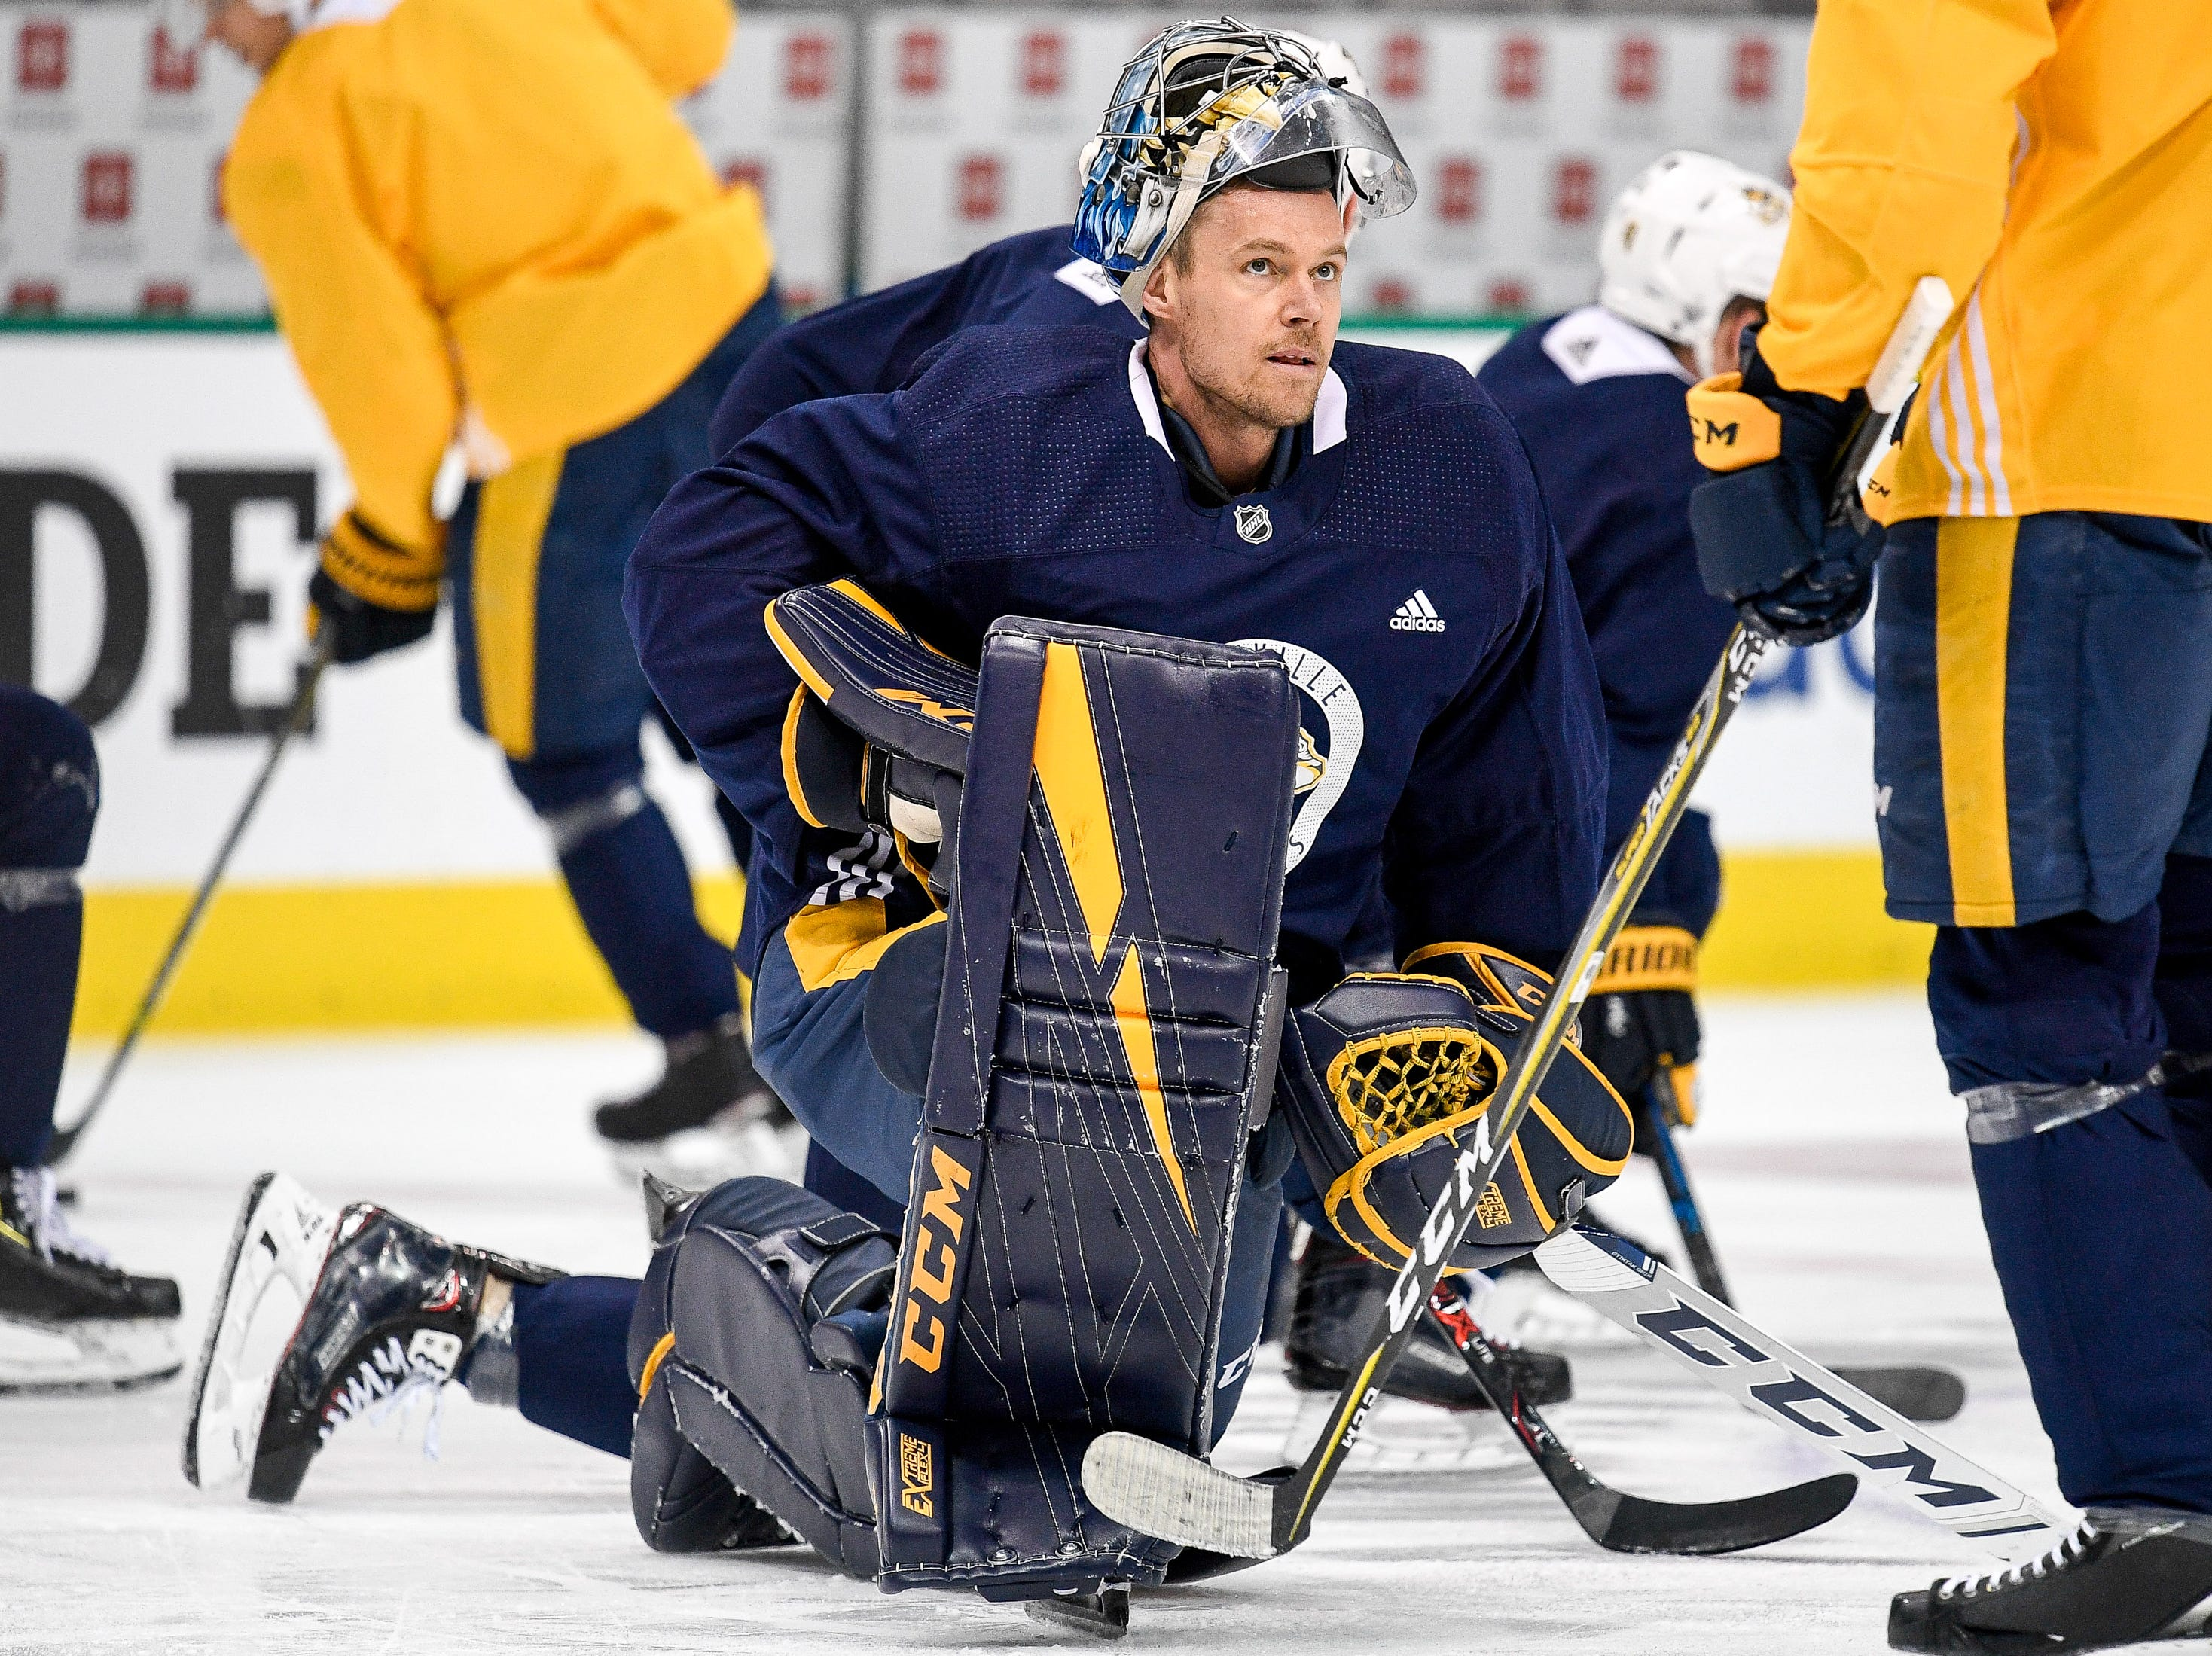 Nashville Predators goaltender Pekka Rinne (35) chats with teammates during practice before the divisional semifinal game against the Dallas Stars at the American Airlines Center in Dallas, Texas, Monday, April 22, 2019.